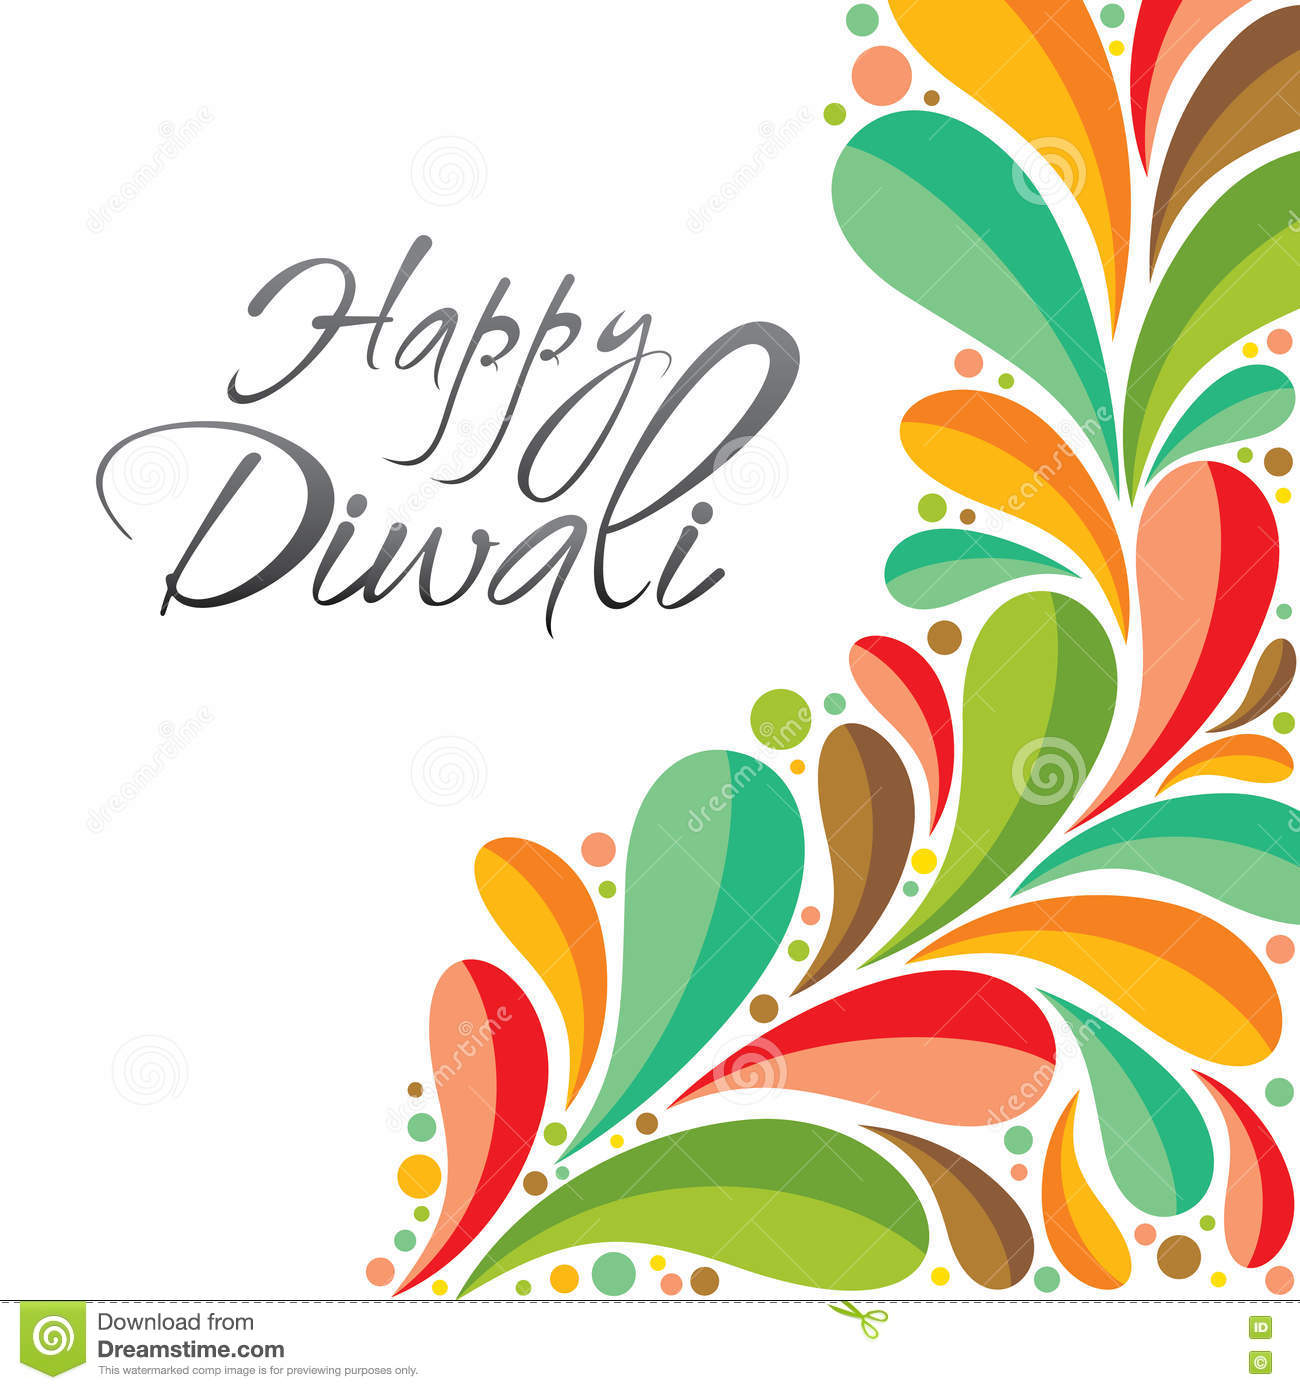 Happy diwali greeting card design stock vector illustration of happy diwali greeting card design royalty free vector download kristyandbryce Image collections